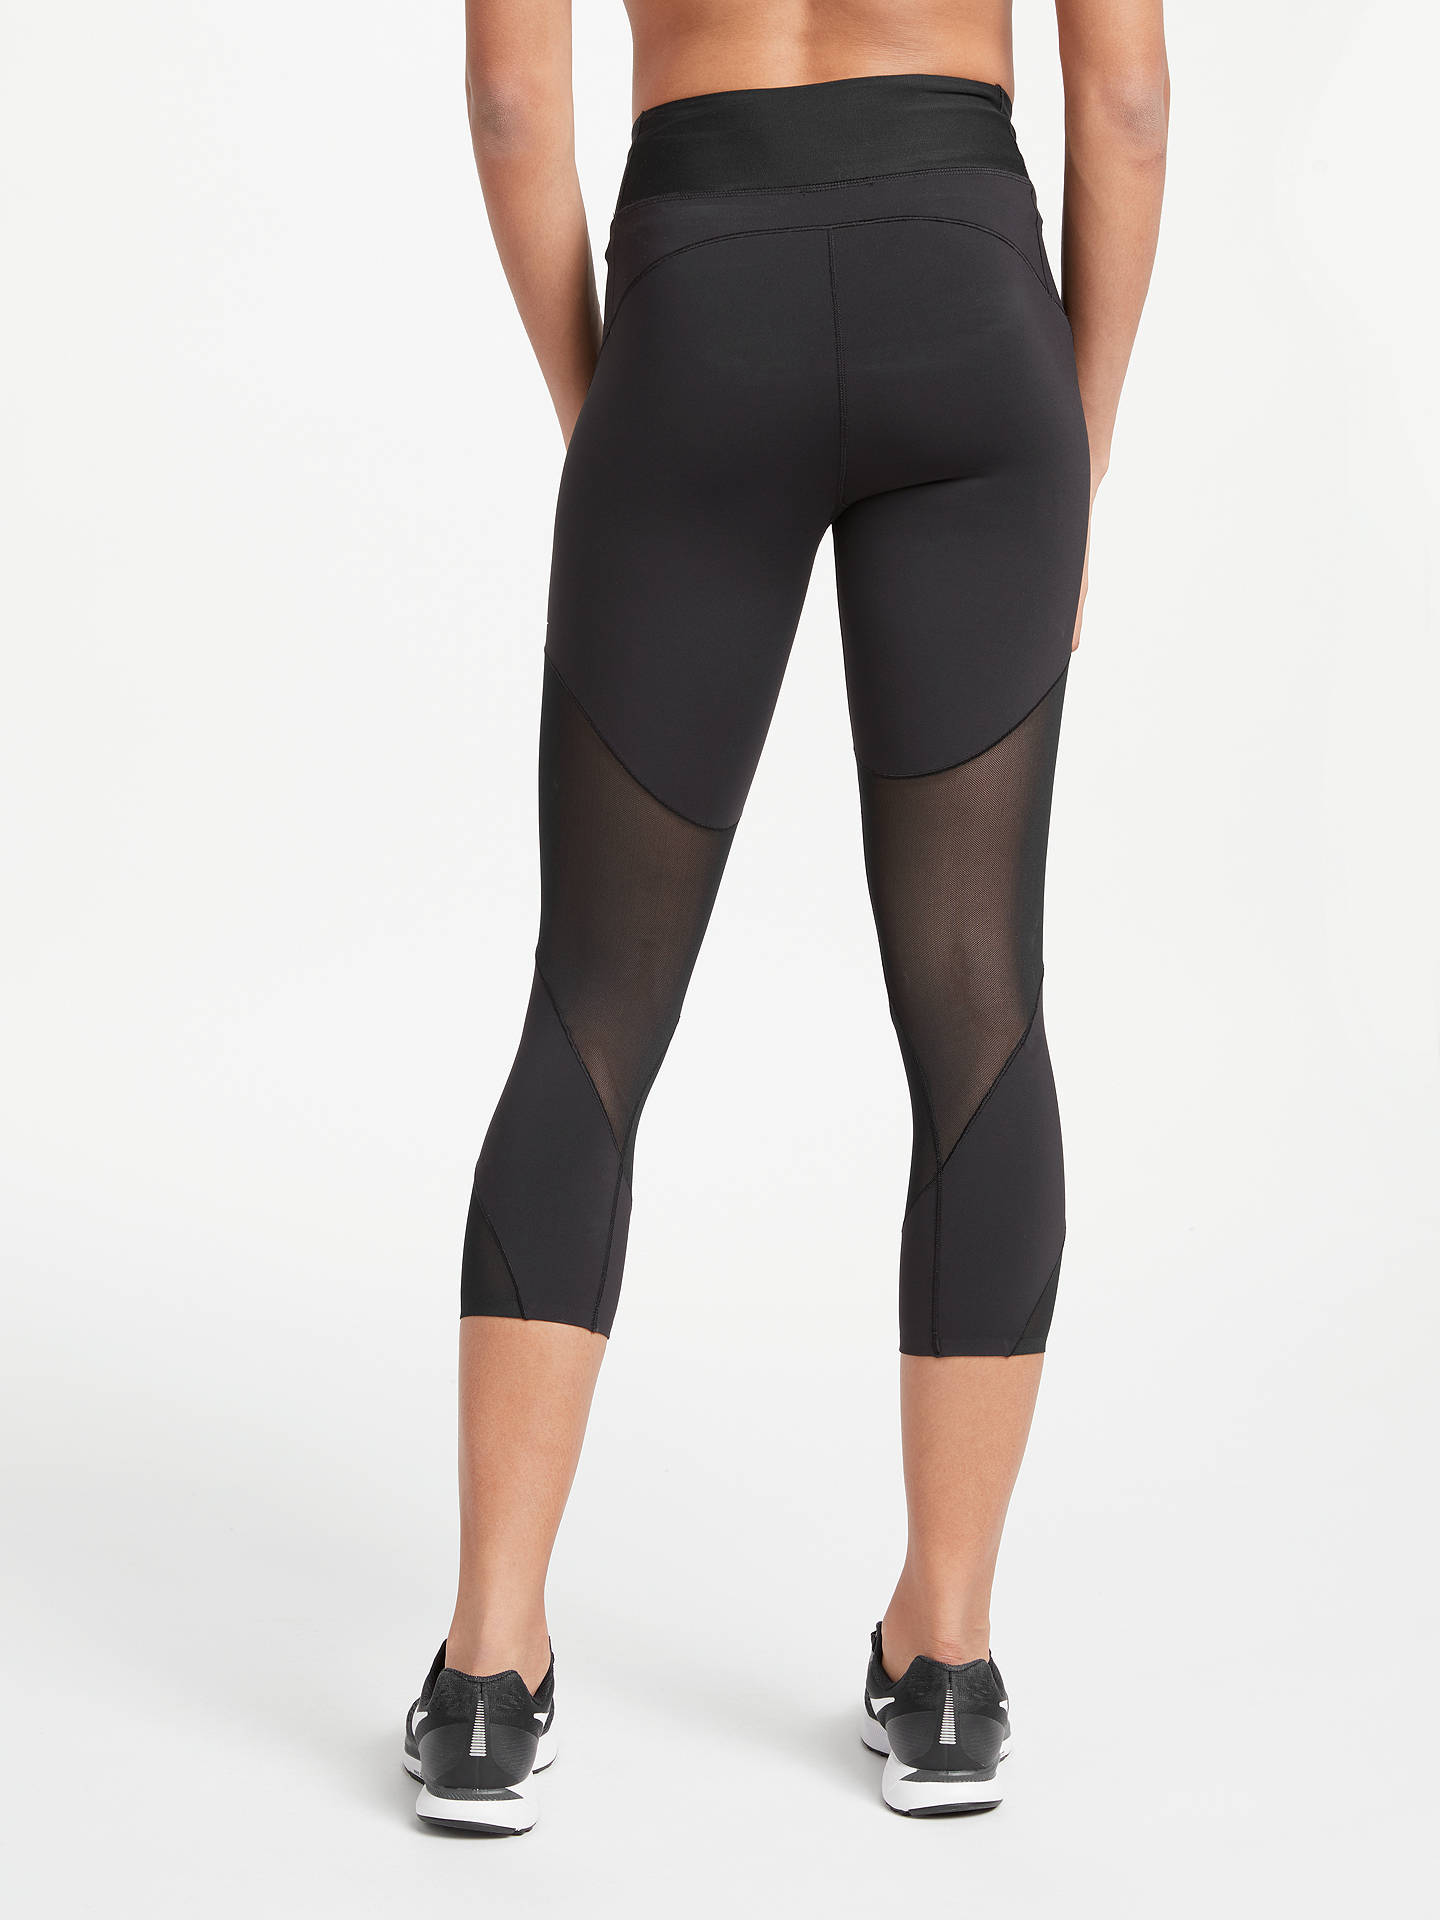 12c171279a4a5 ... Buy Nike Fly Lux Training Crops, Black, XS Online at johnlewis.com ...